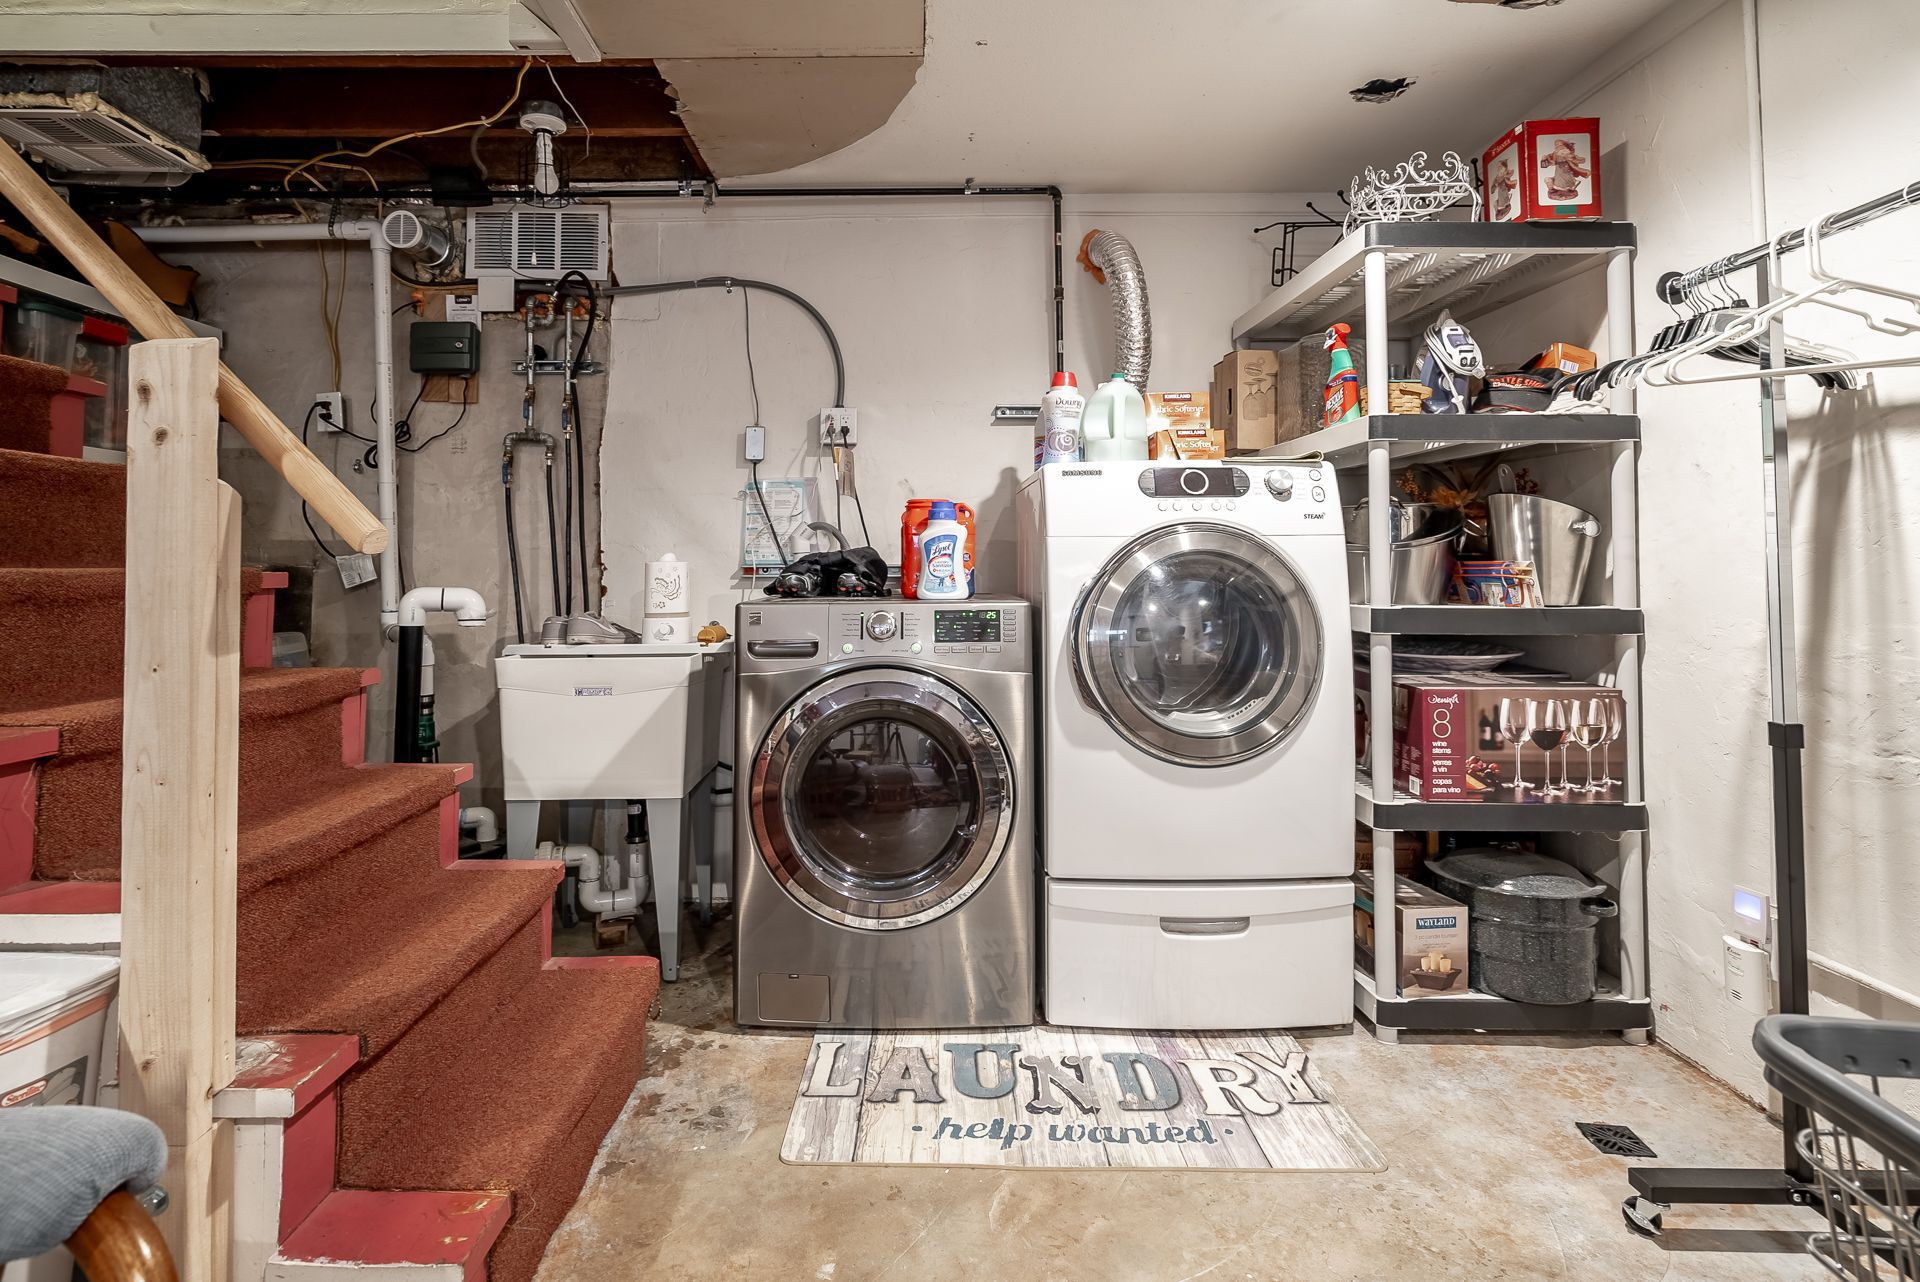 Alternate View Of Basement With Utility Sink And Laundry Area (units  Included U2014 Washer Is Only A Year Old, And Seller Is Unsure Of Gas Dryer  Age).